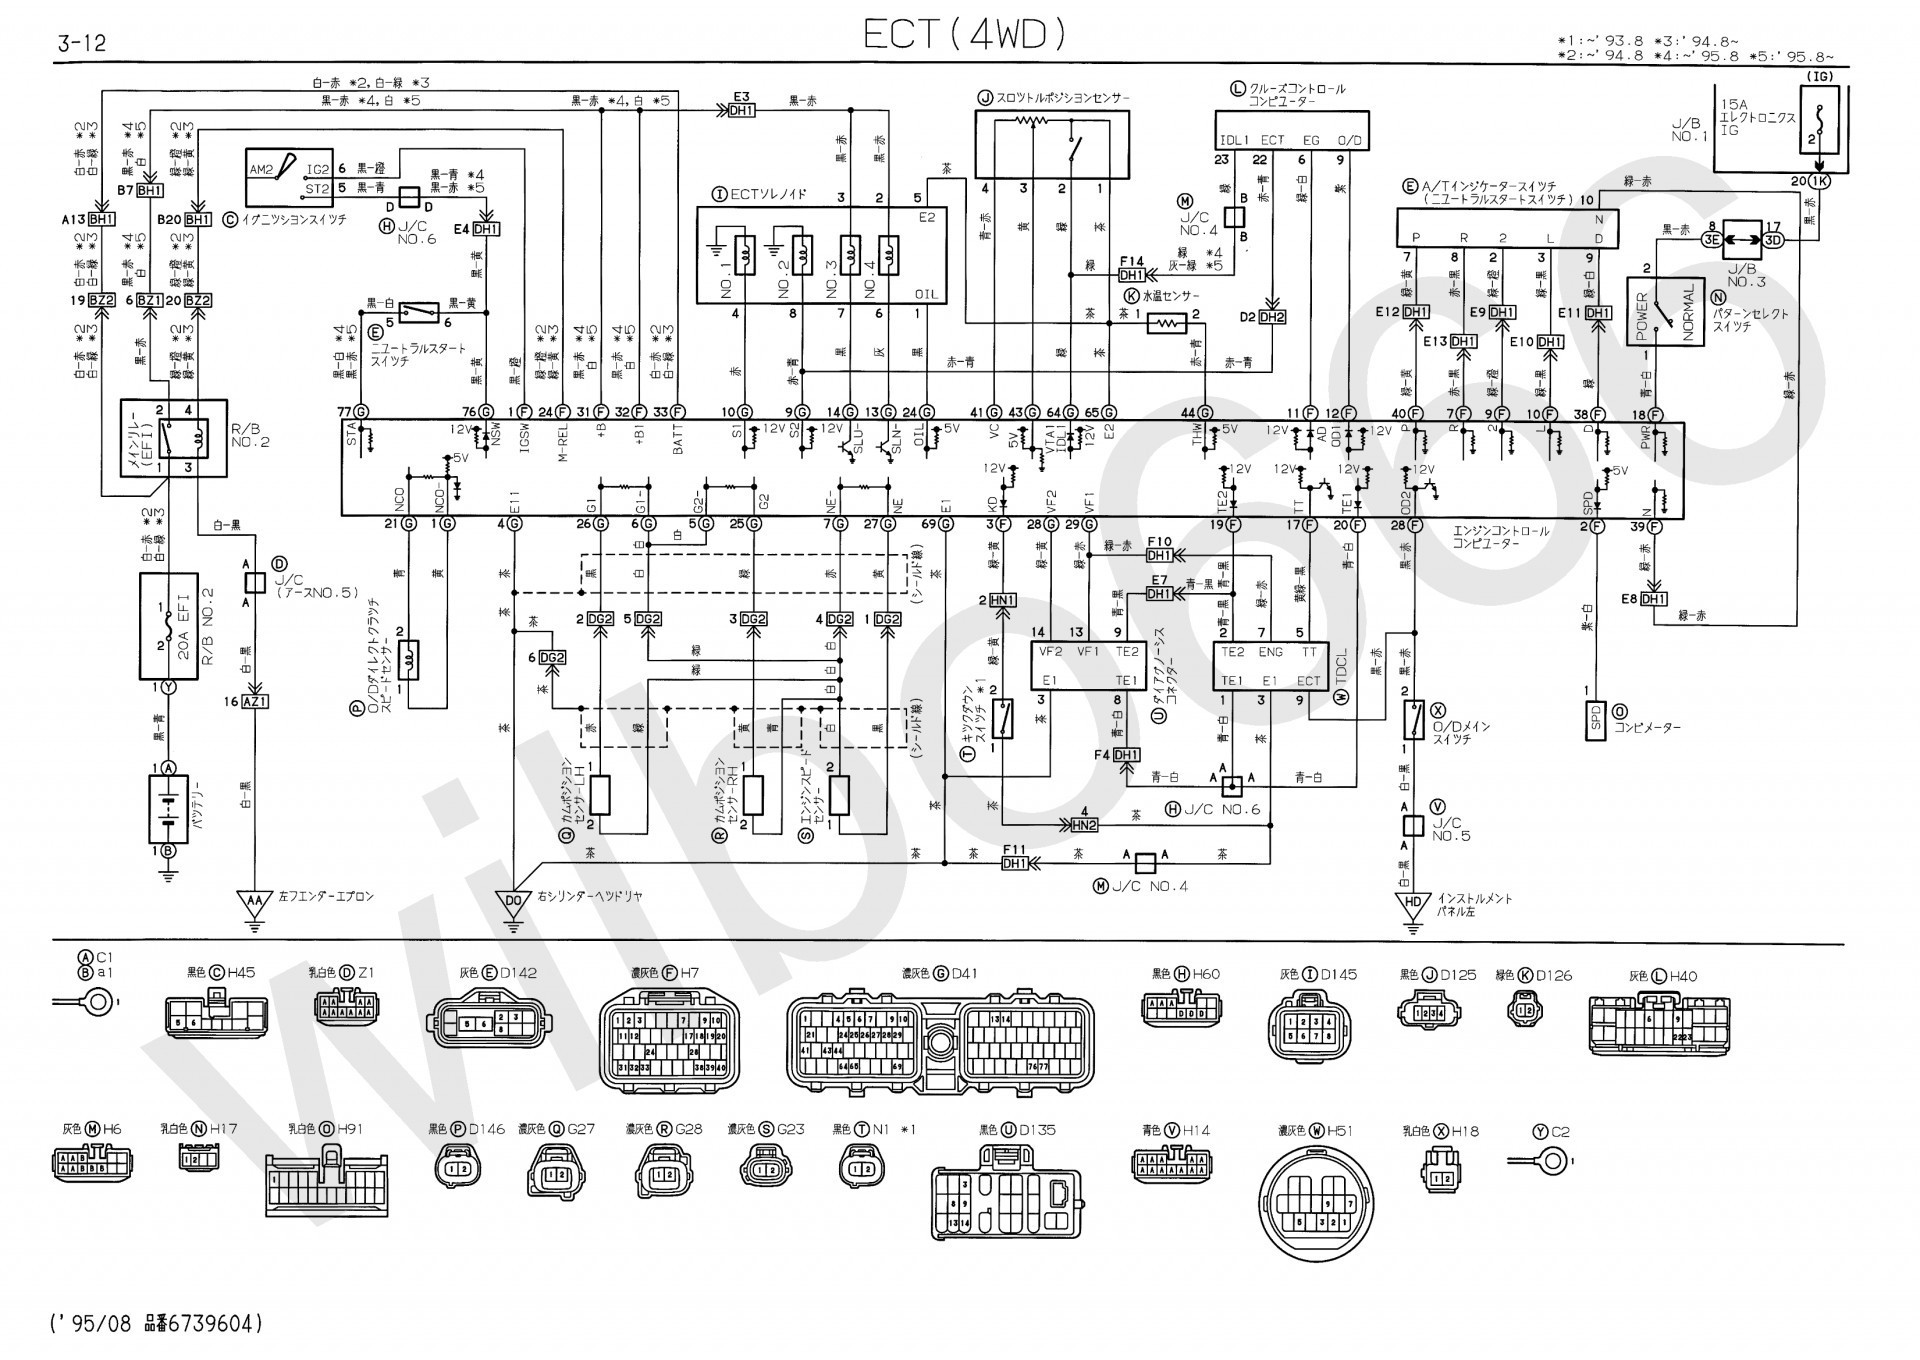 John Deere Gator 4×2 Ts Fuse Block 3abe Tecumseh Engine Ignition Wiring Diagram Of John Deere Gator 4×2 Ts Fuse Block